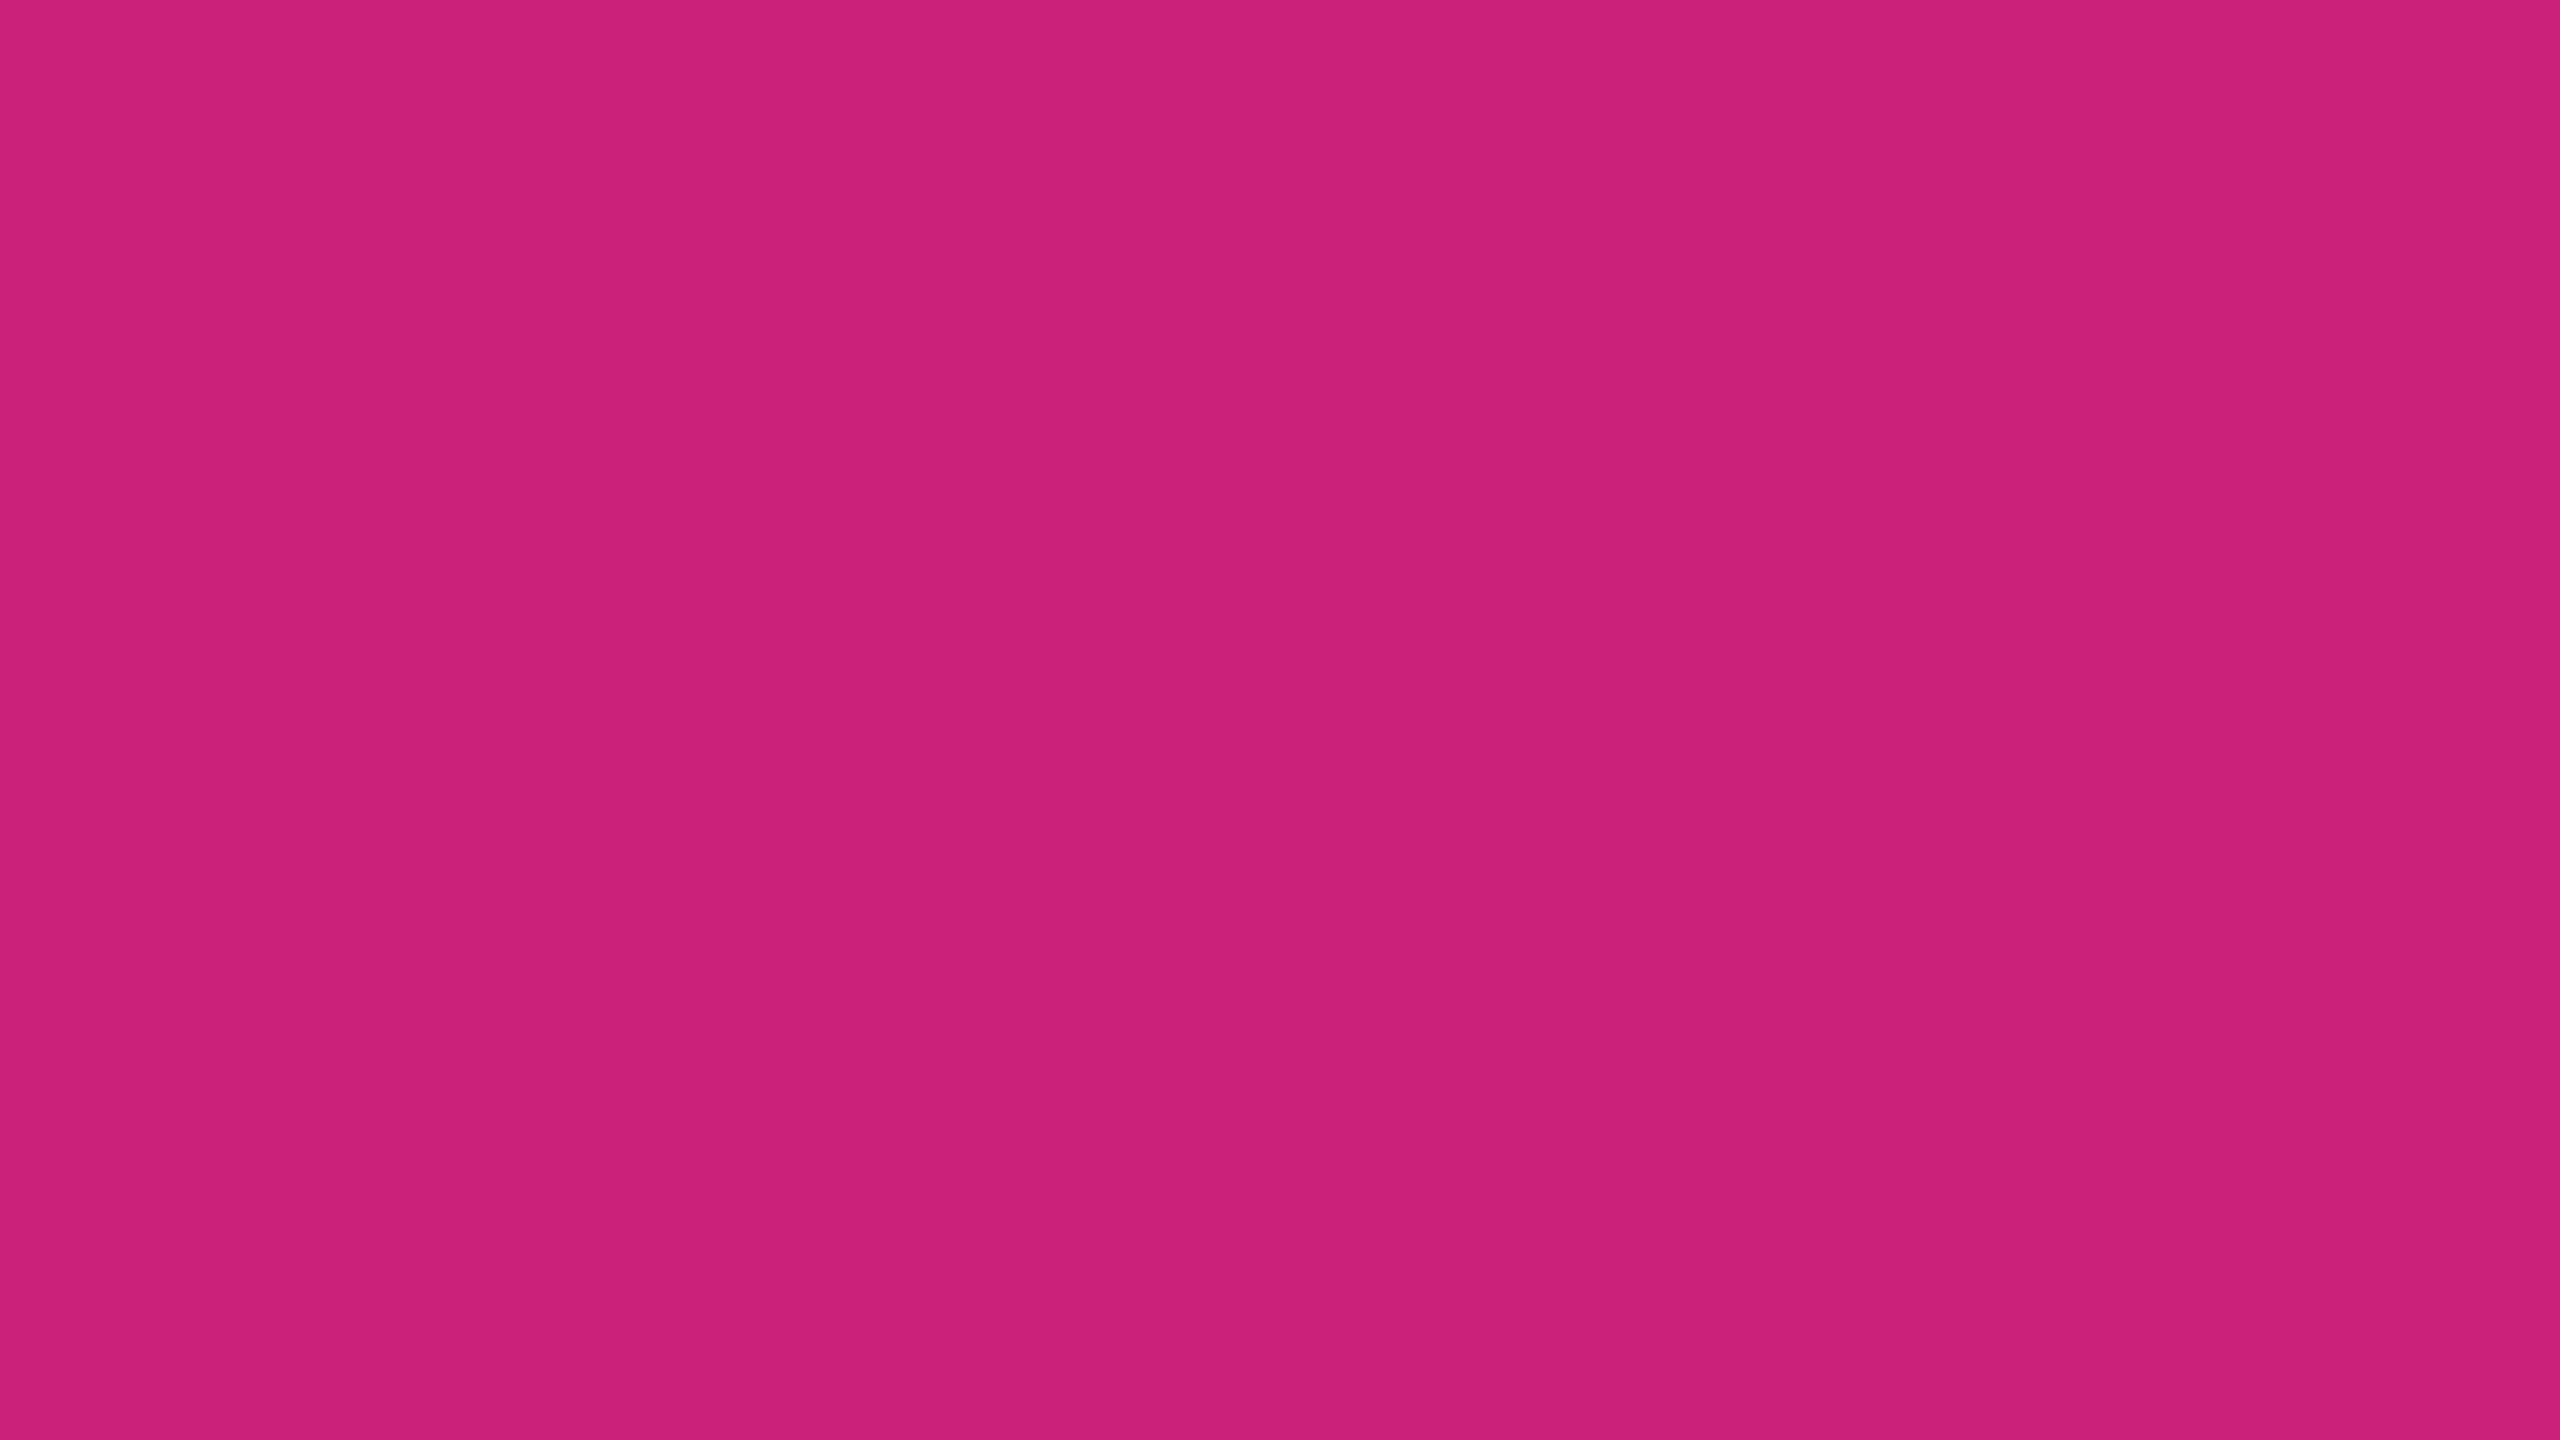 2560x1440 Magenta Dye Solid Color Background